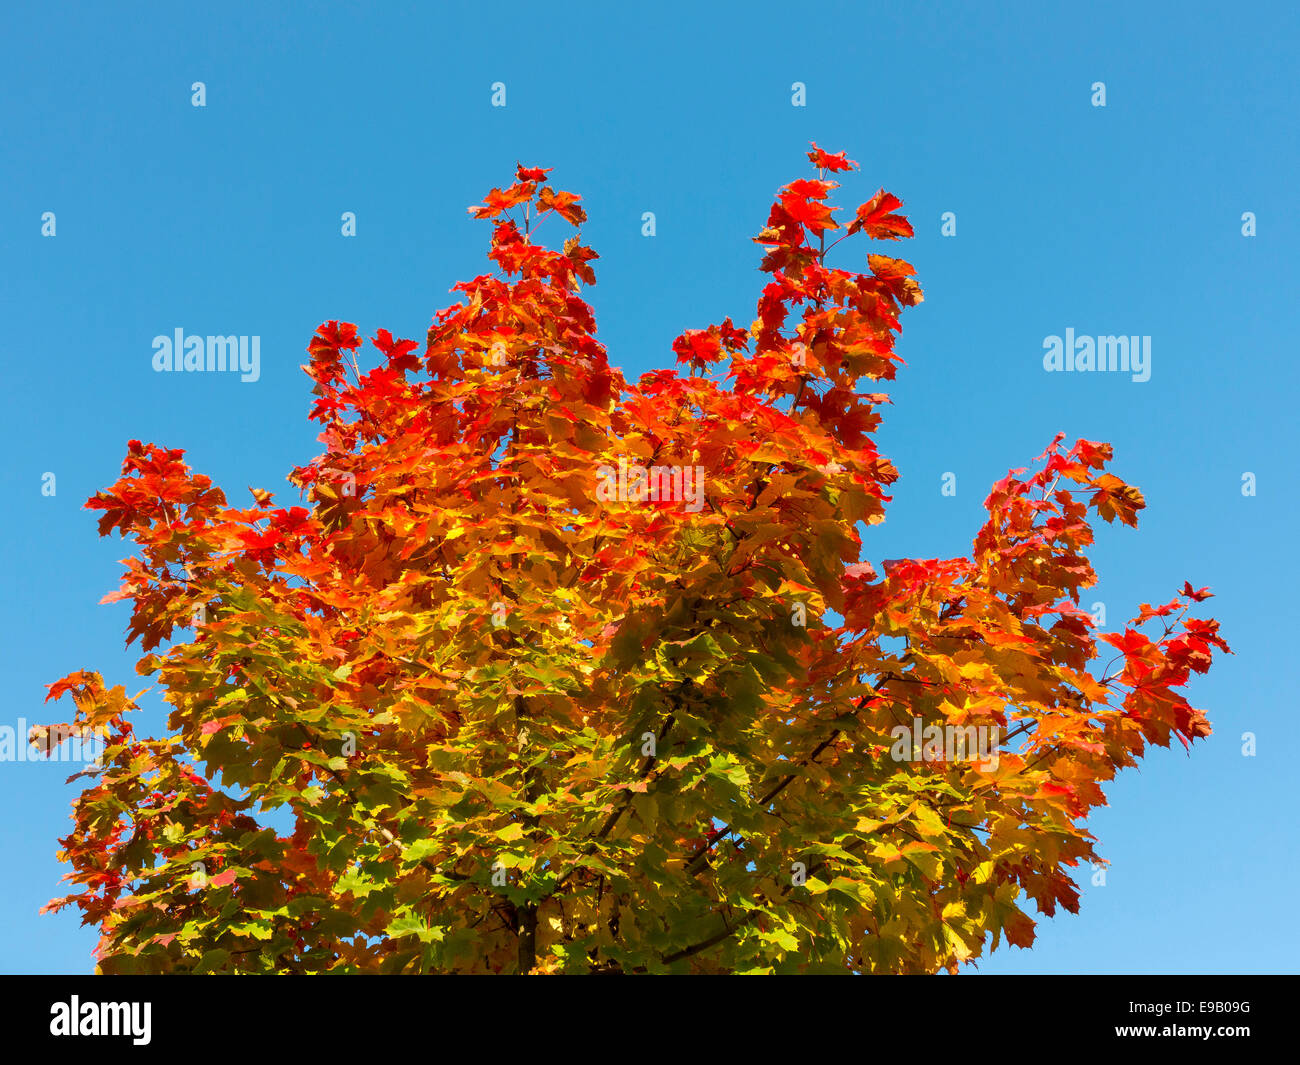 Maple (Acer sp.) with autumn colors Stock Photo